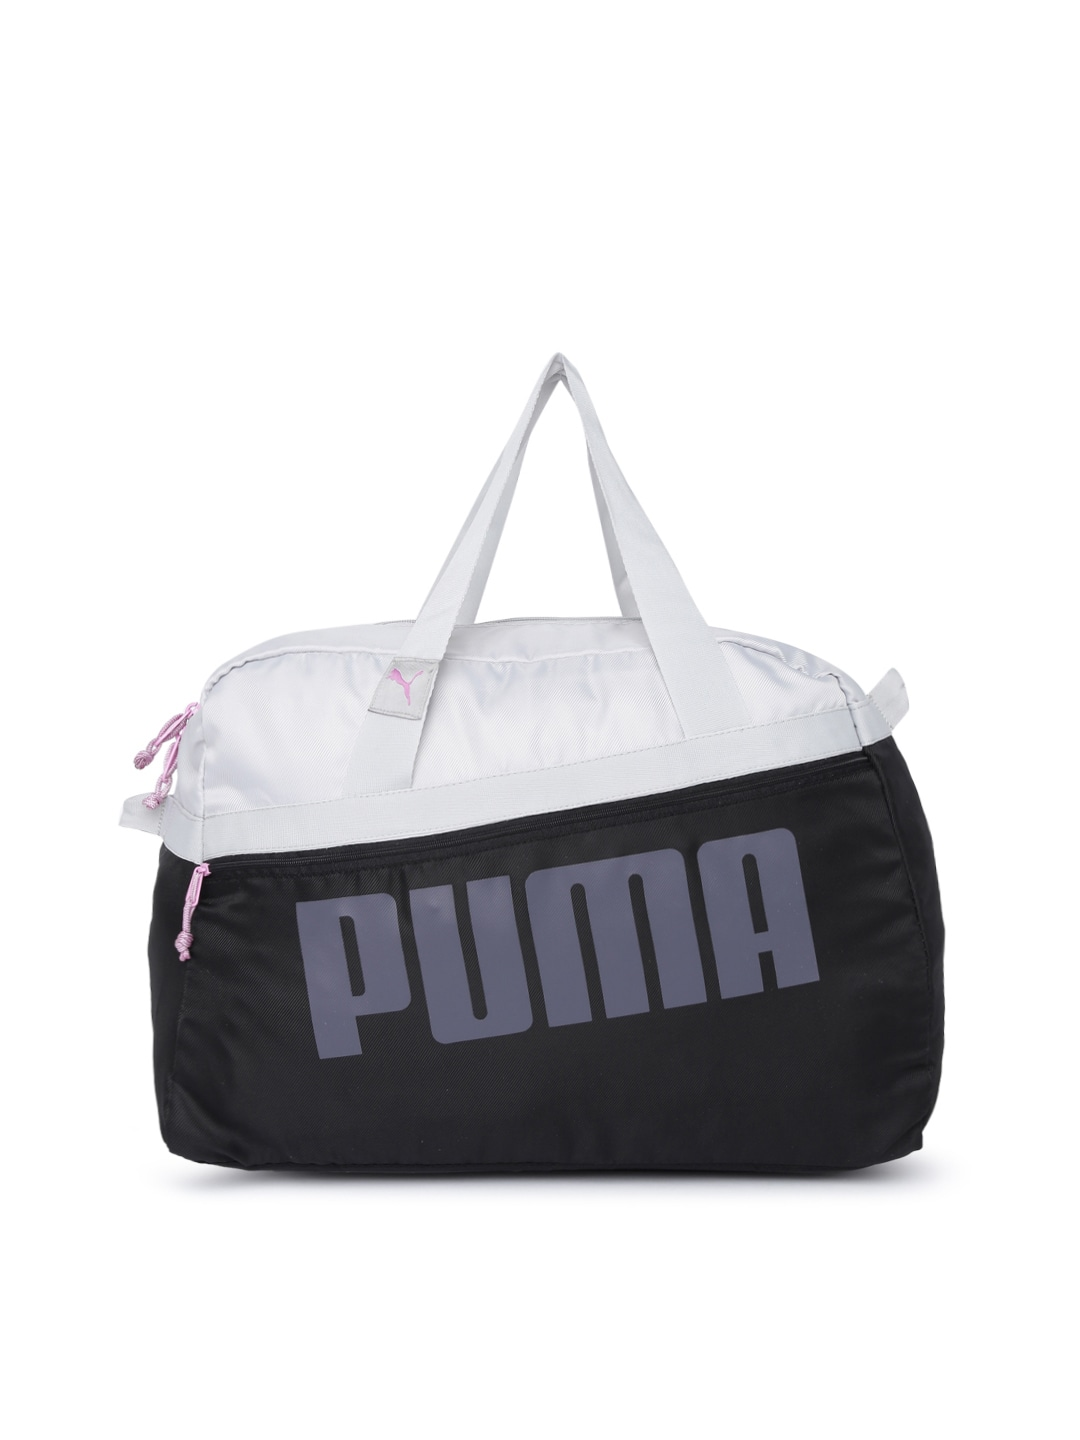 8fc49beb27c9 Puma® - Buy Orignal Puma products in India